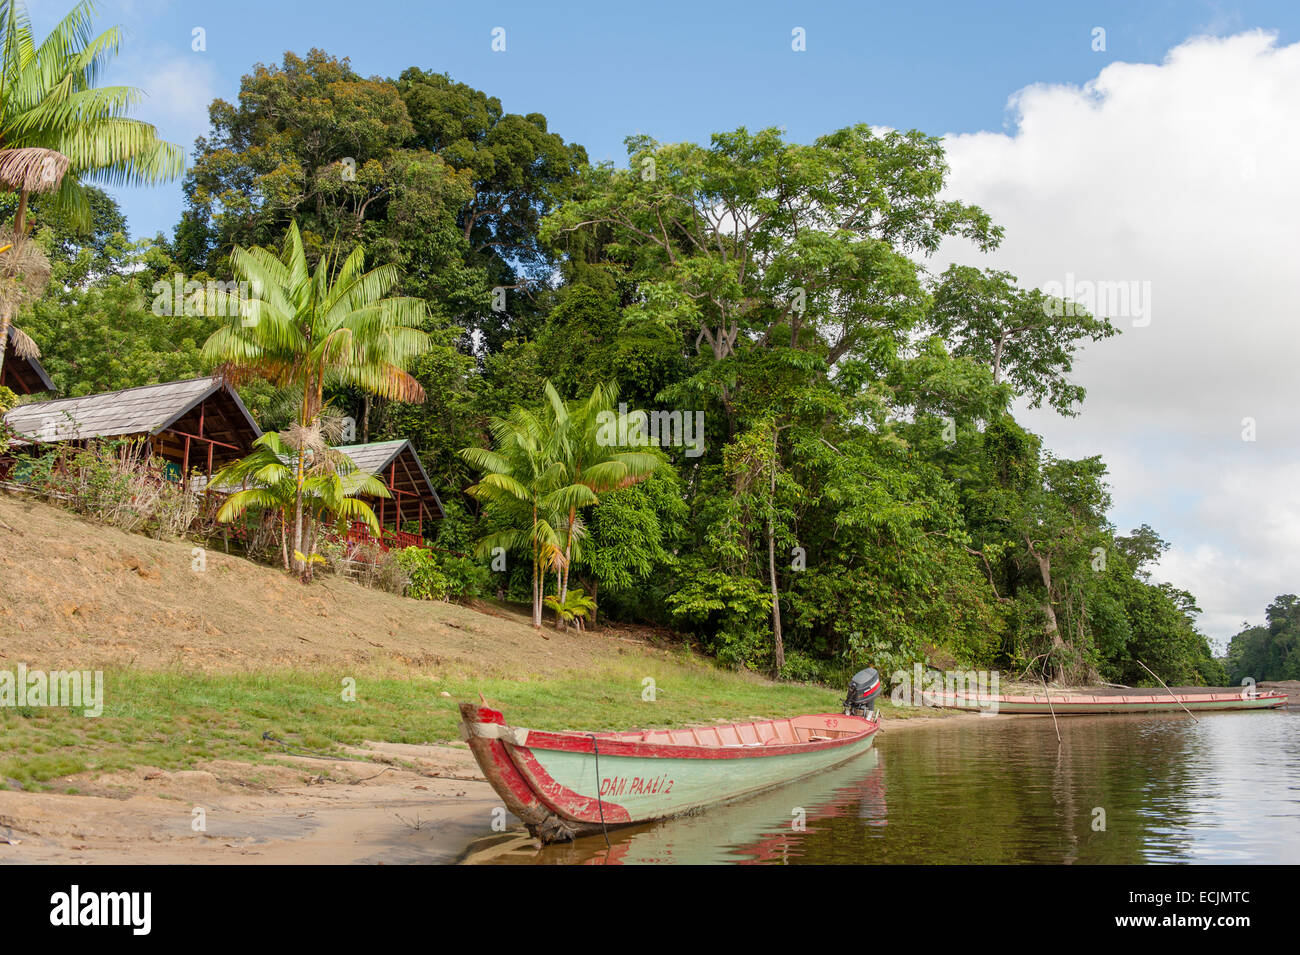 River canoe moored at the banks of Suriname River at Danpaati Lodge, Upper Suriname - Stock Image